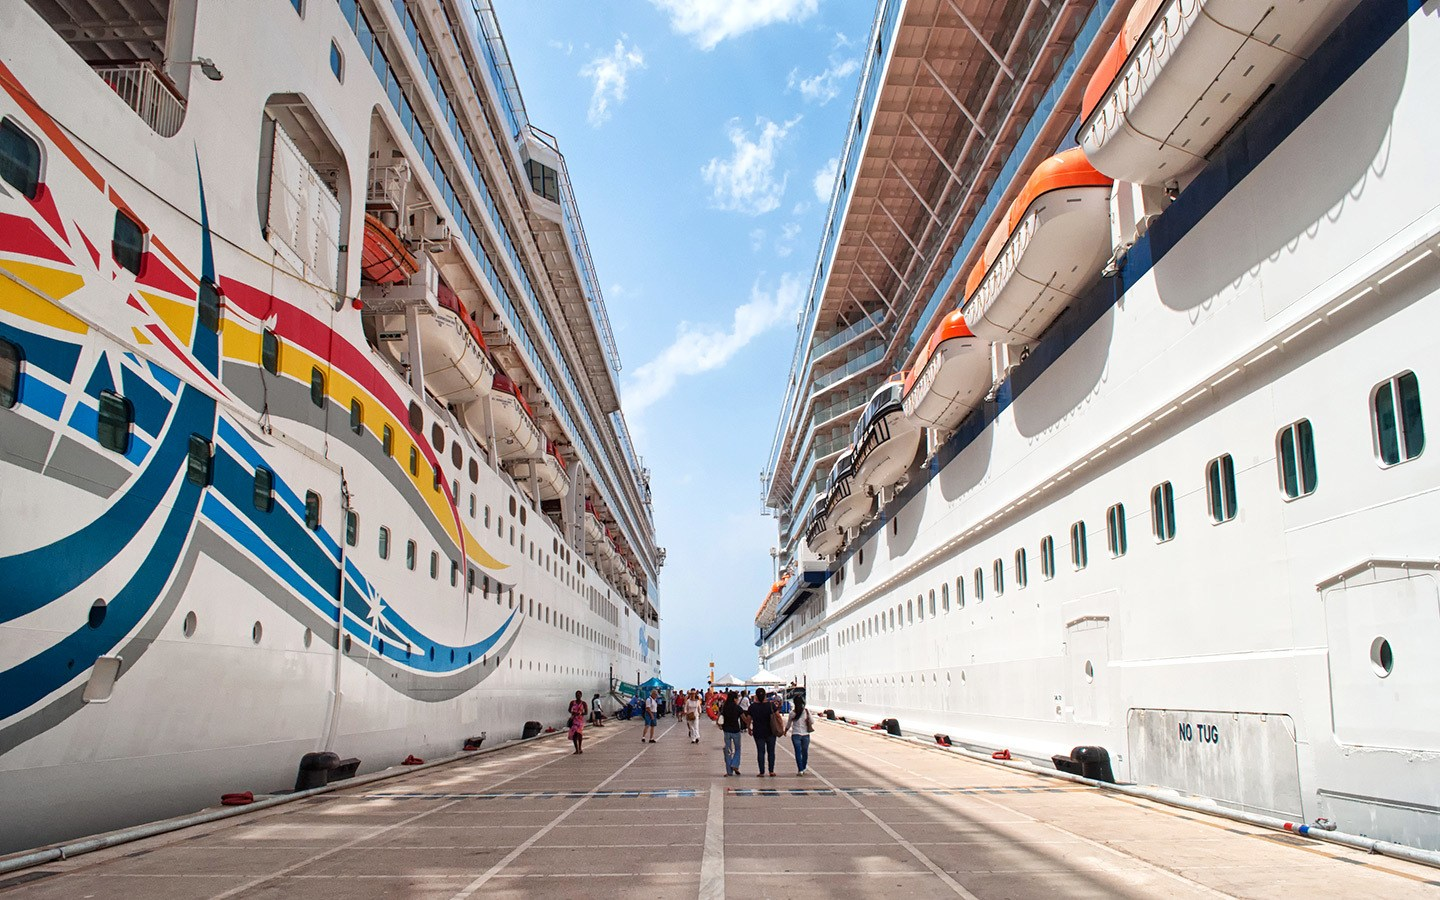 Two cruise ships in dock